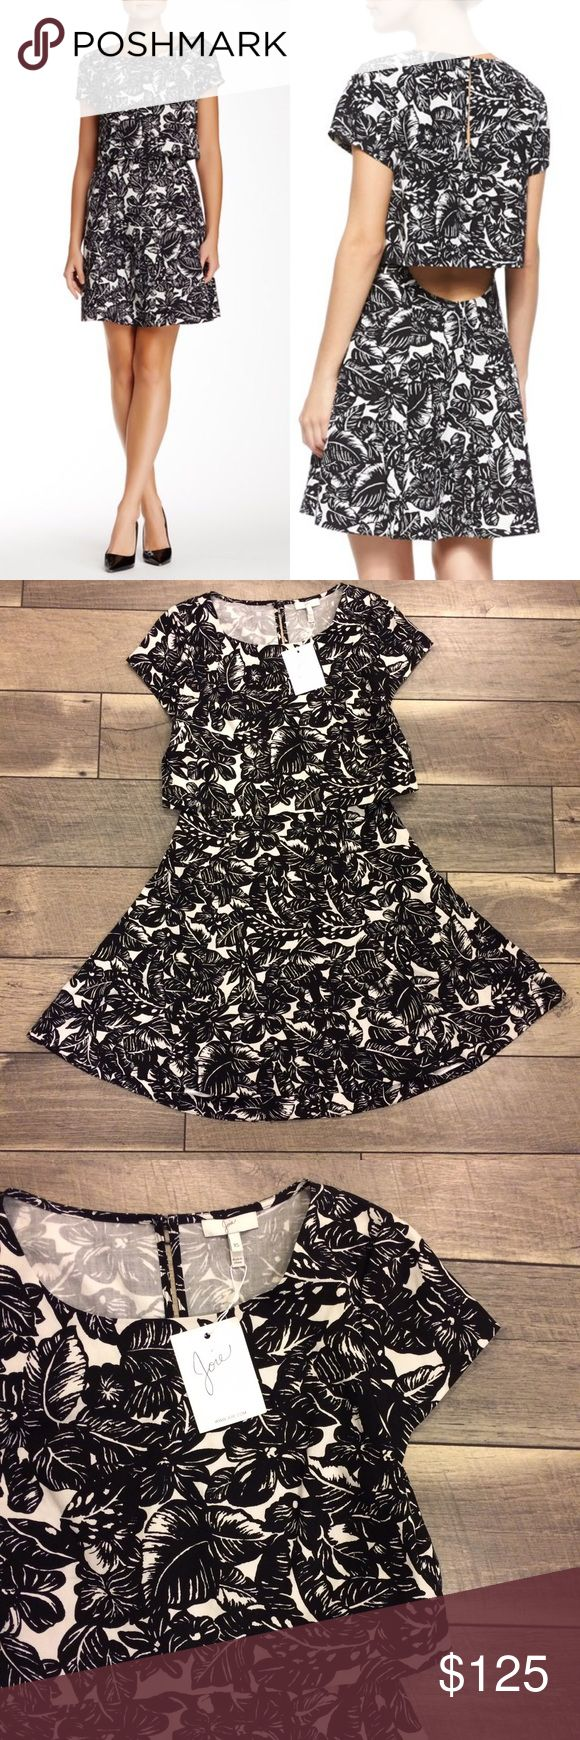 NWT Joie Eley Floral Dress Adorable and amazing quality! New with tags. Adorable back cut out detail. Super cute with a cardigan and booties! Joie Dresses